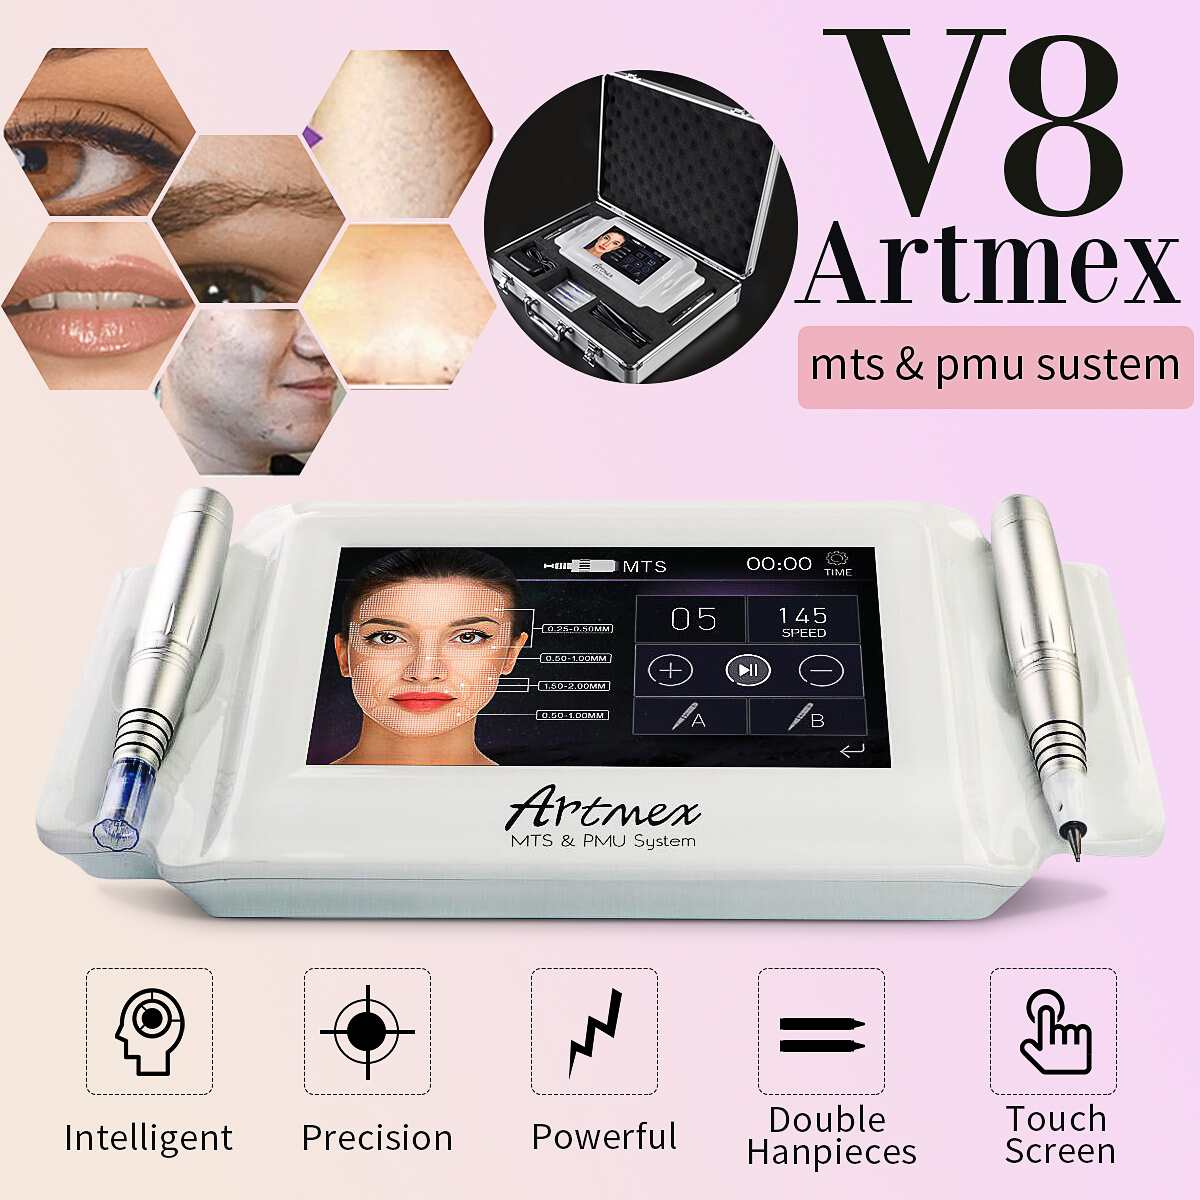 100-240V AC Artmex V8 Permanent Makeup Tattoo Machine Digital Electric Eye Brow Lip Rotary Pen MTS PMU System Makeup Machine